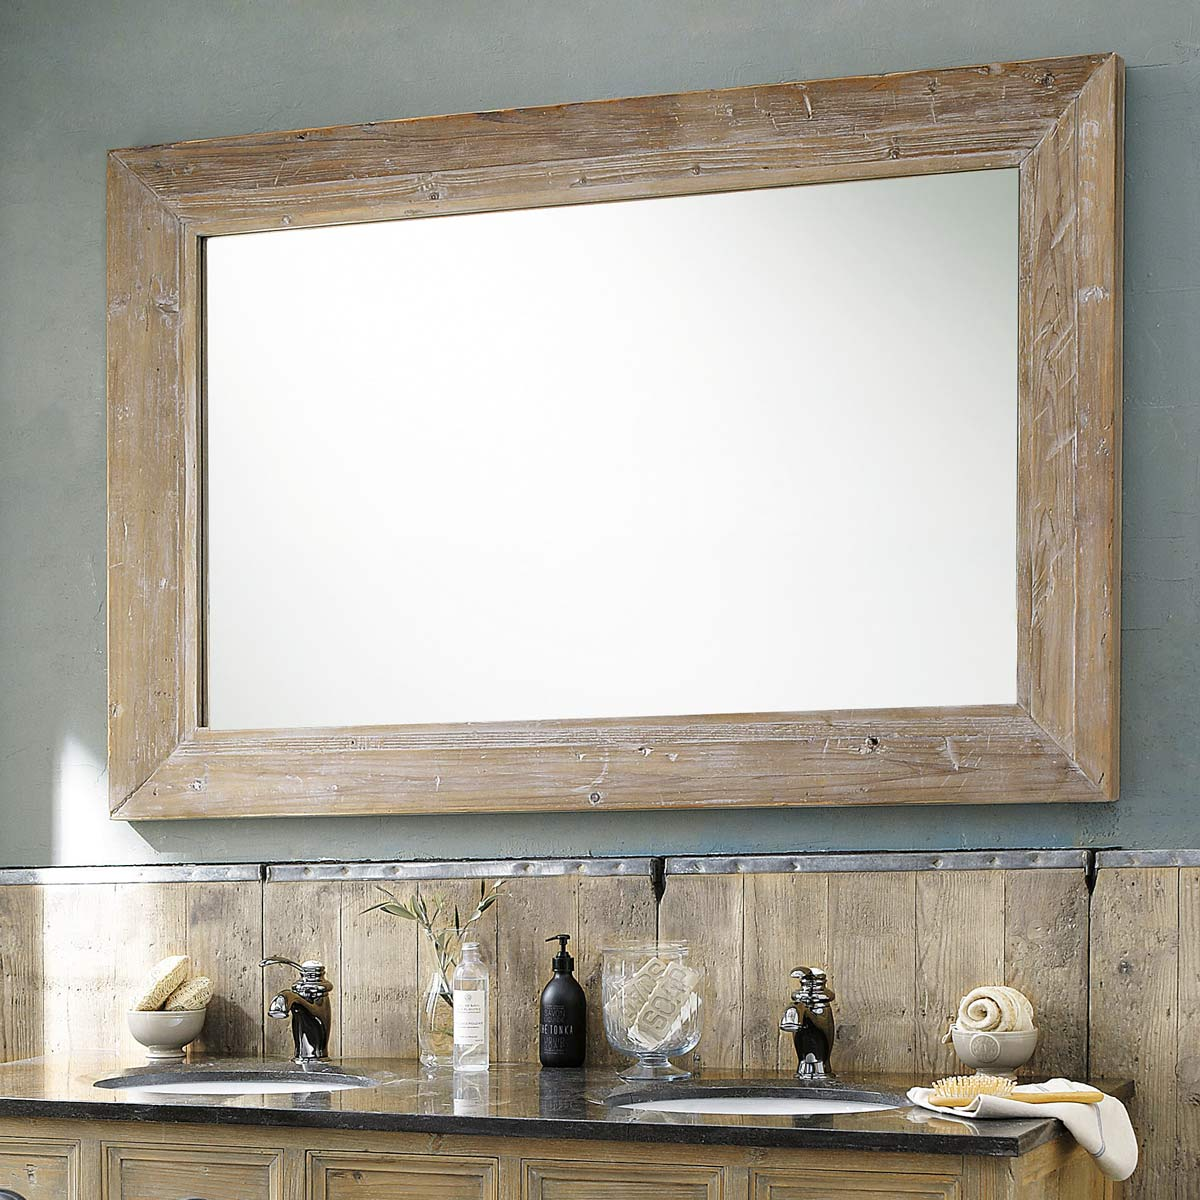 Grand miroir en bois naturel miroir d coration for Miroir mural grand